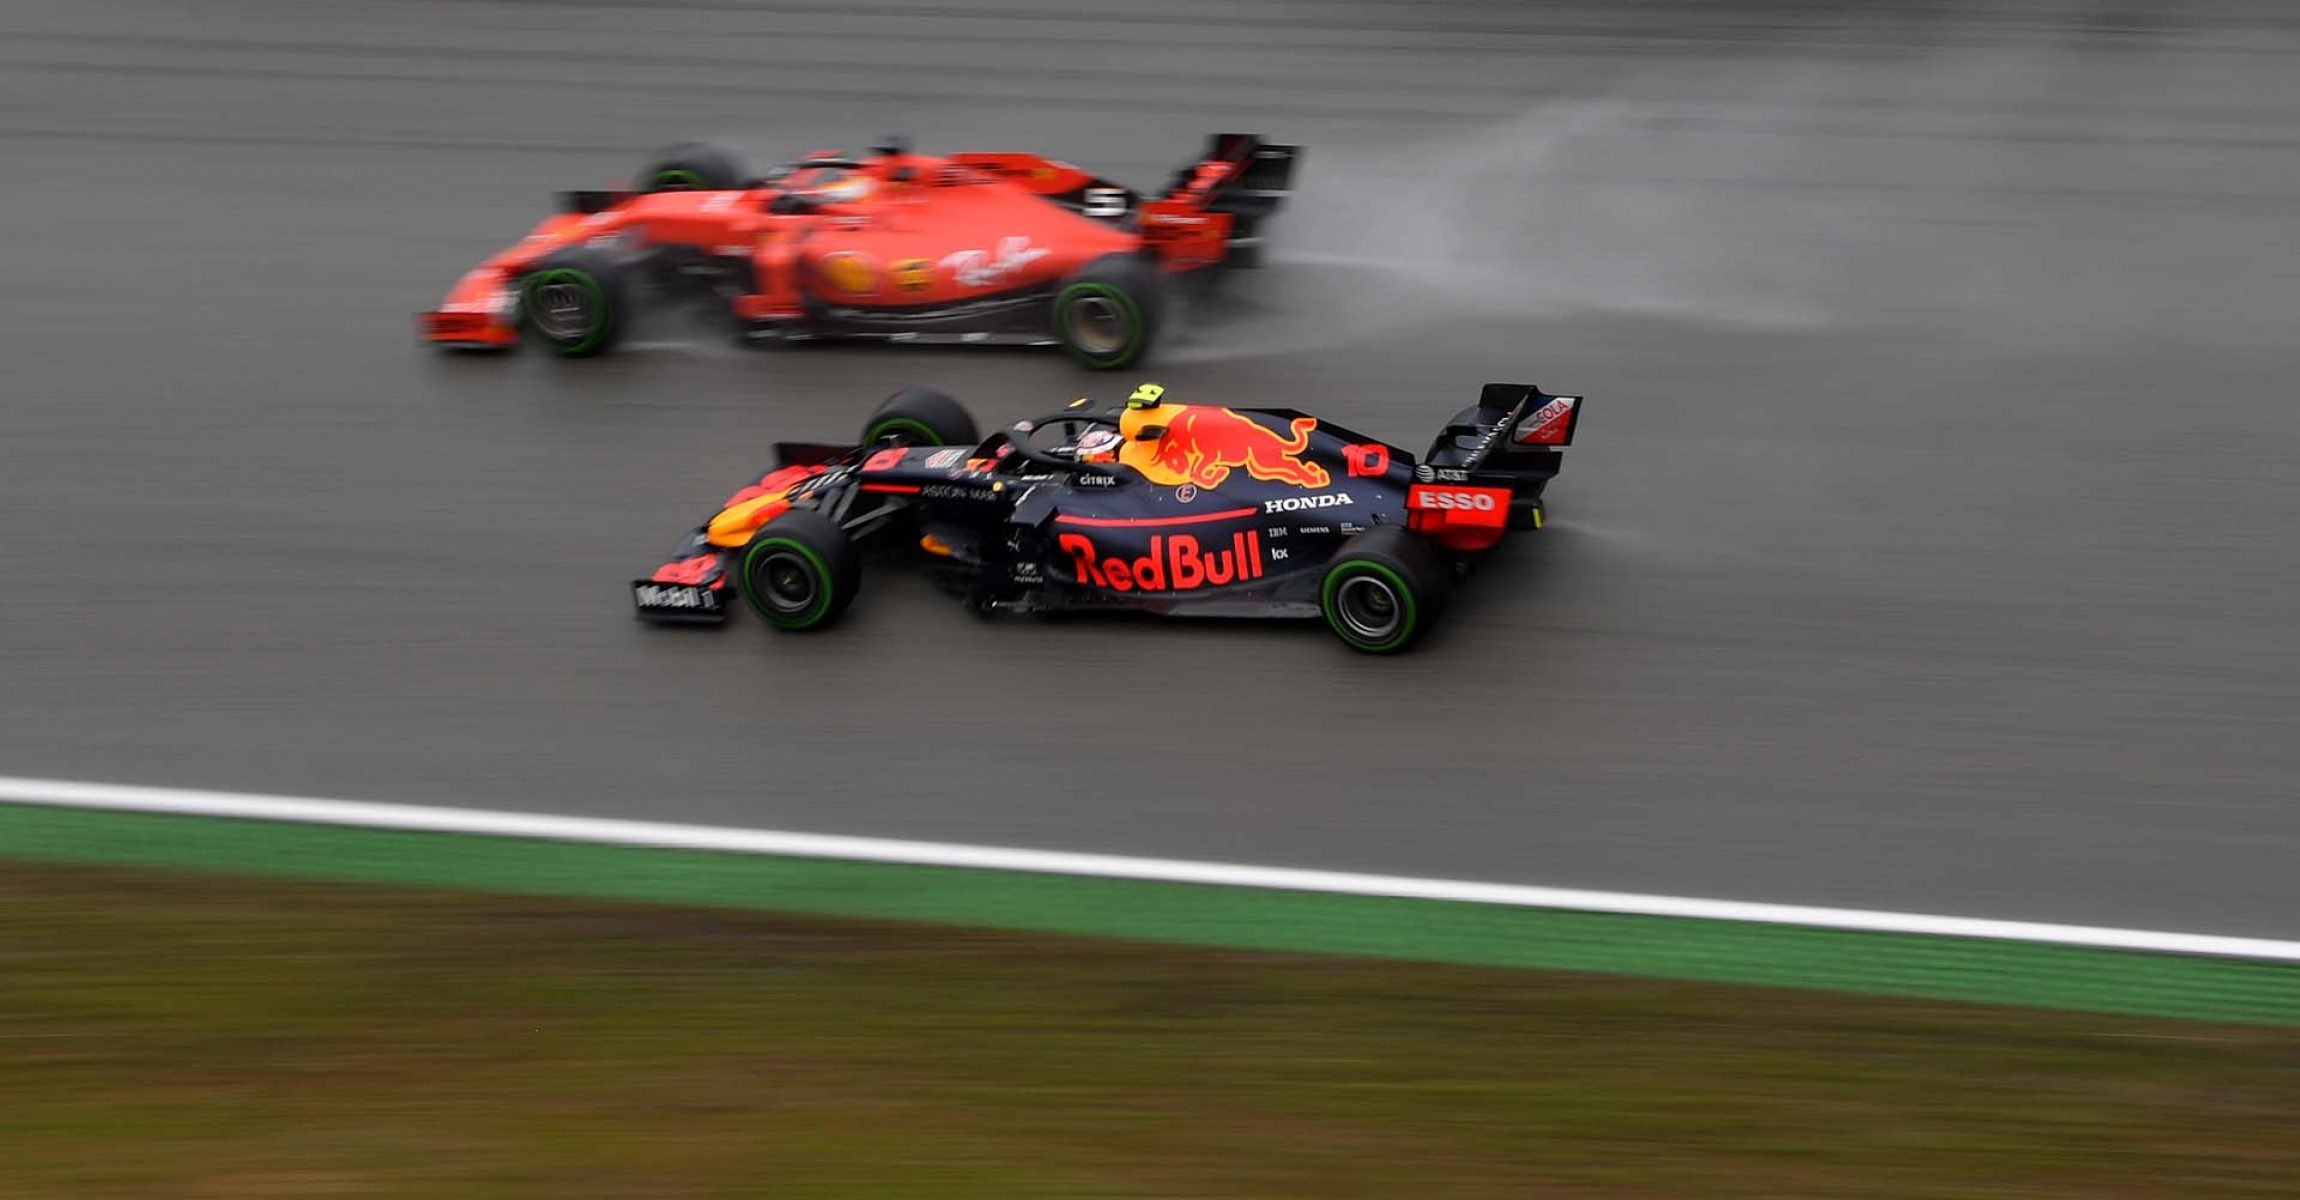 HOCKENHEIM, GERMANY - JULY 28: Pierre Gasly of France driving the (10) Aston Martin Red Bull Racing RB15 and Sebastian Vettel of Germany driving the (5) Scuderia Ferrari SF90 on track during the F1 Grand Prix of Germany at Hockenheimring on July 28, 2019 in Hockenheim, Germany. (Photo by Dan Mullan/Getty Images) // Getty Images / Red Bull Content Pool // AP-213AXX2HS2111 // Usage for editorial use only // Please go to www.redbullcontentpool.com for further information. //